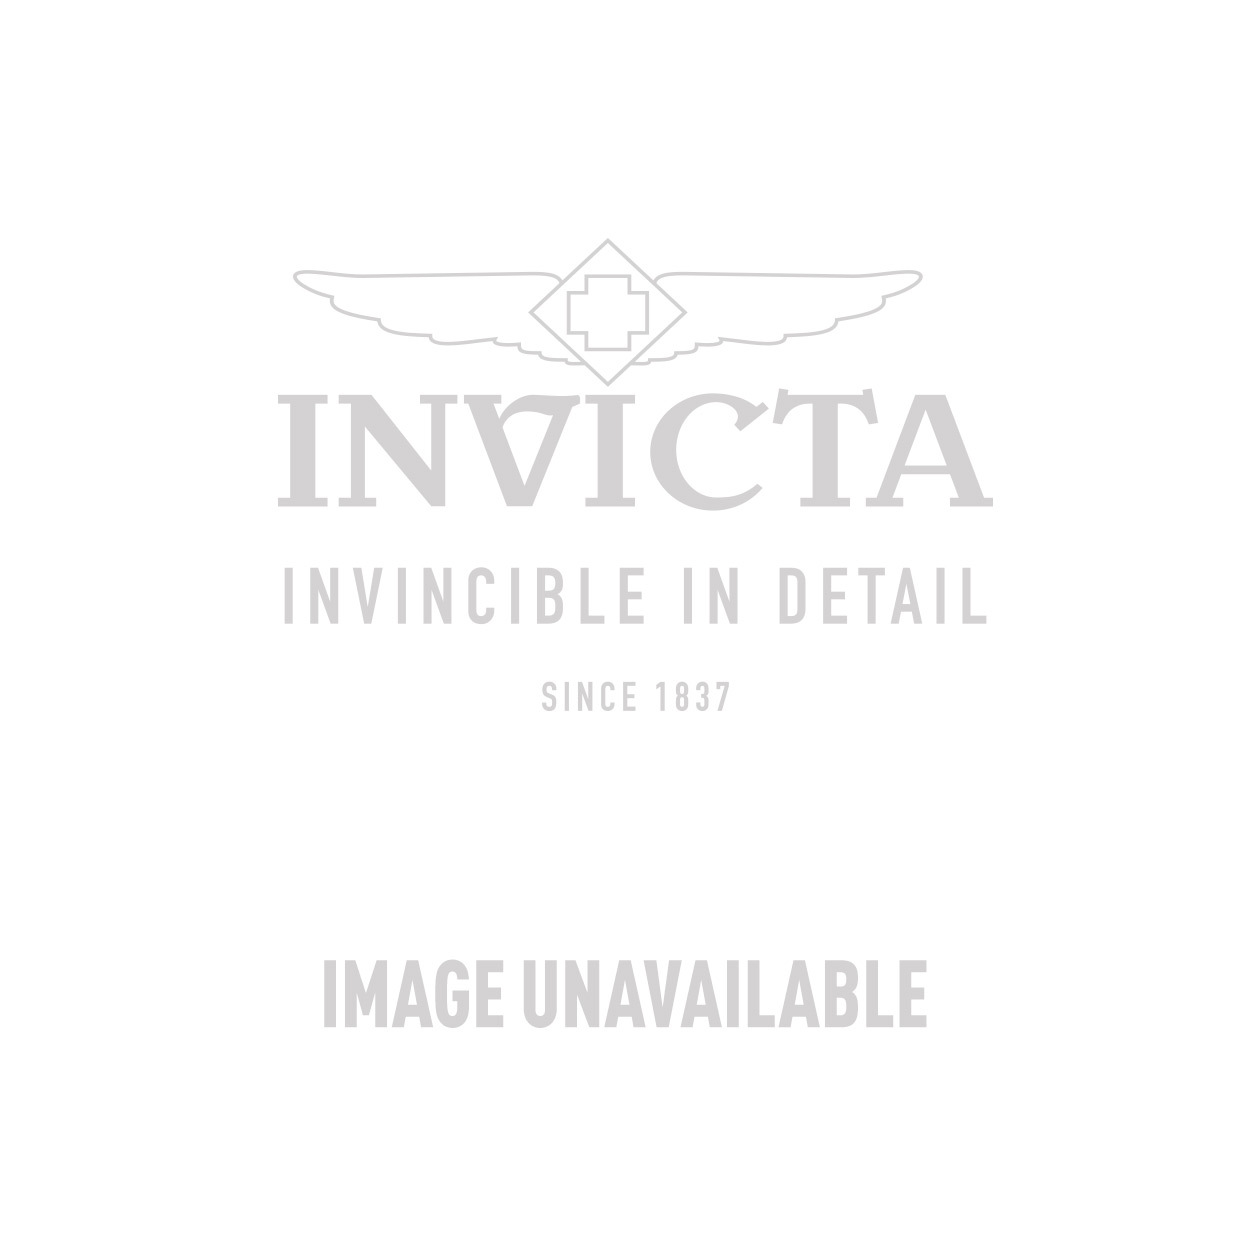 Invicta Pro Diver Swiss Movement Quartz Watch - Stainless Steel case Stainless Steel band - Model 17601